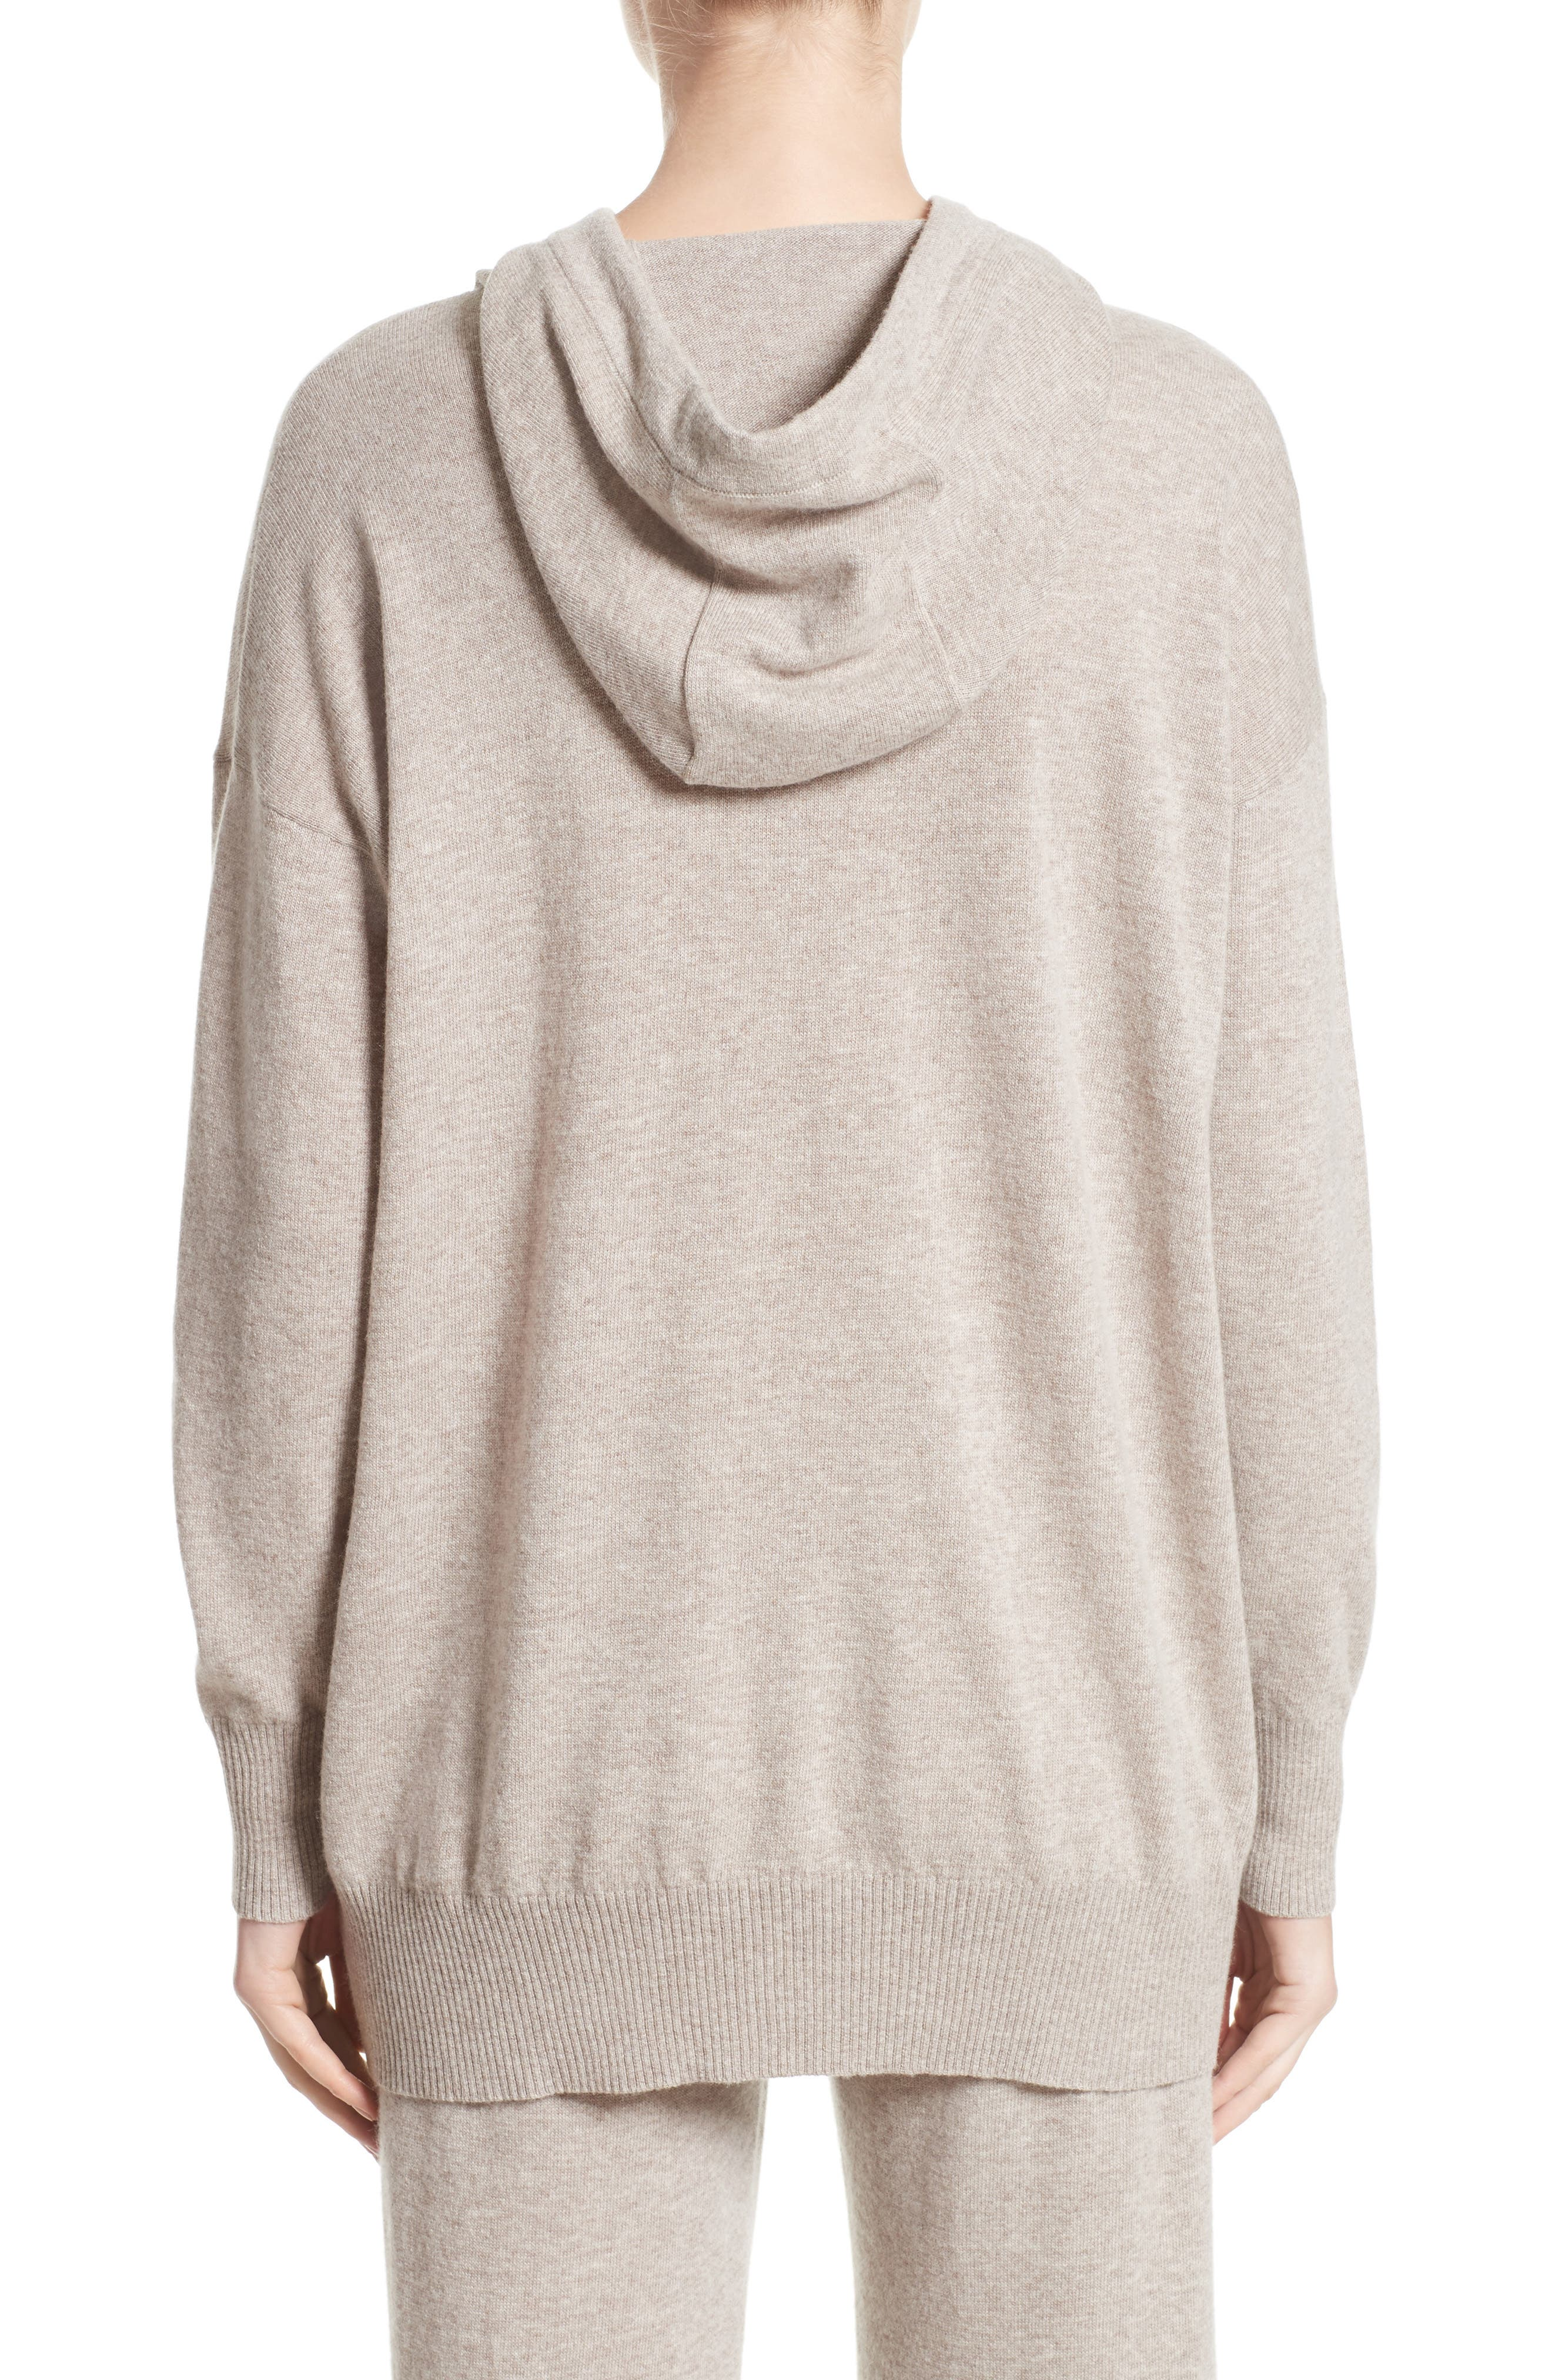 Nitra Wool & Cashmere Hooded Sweater,                             Alternate thumbnail 2, color,                             236